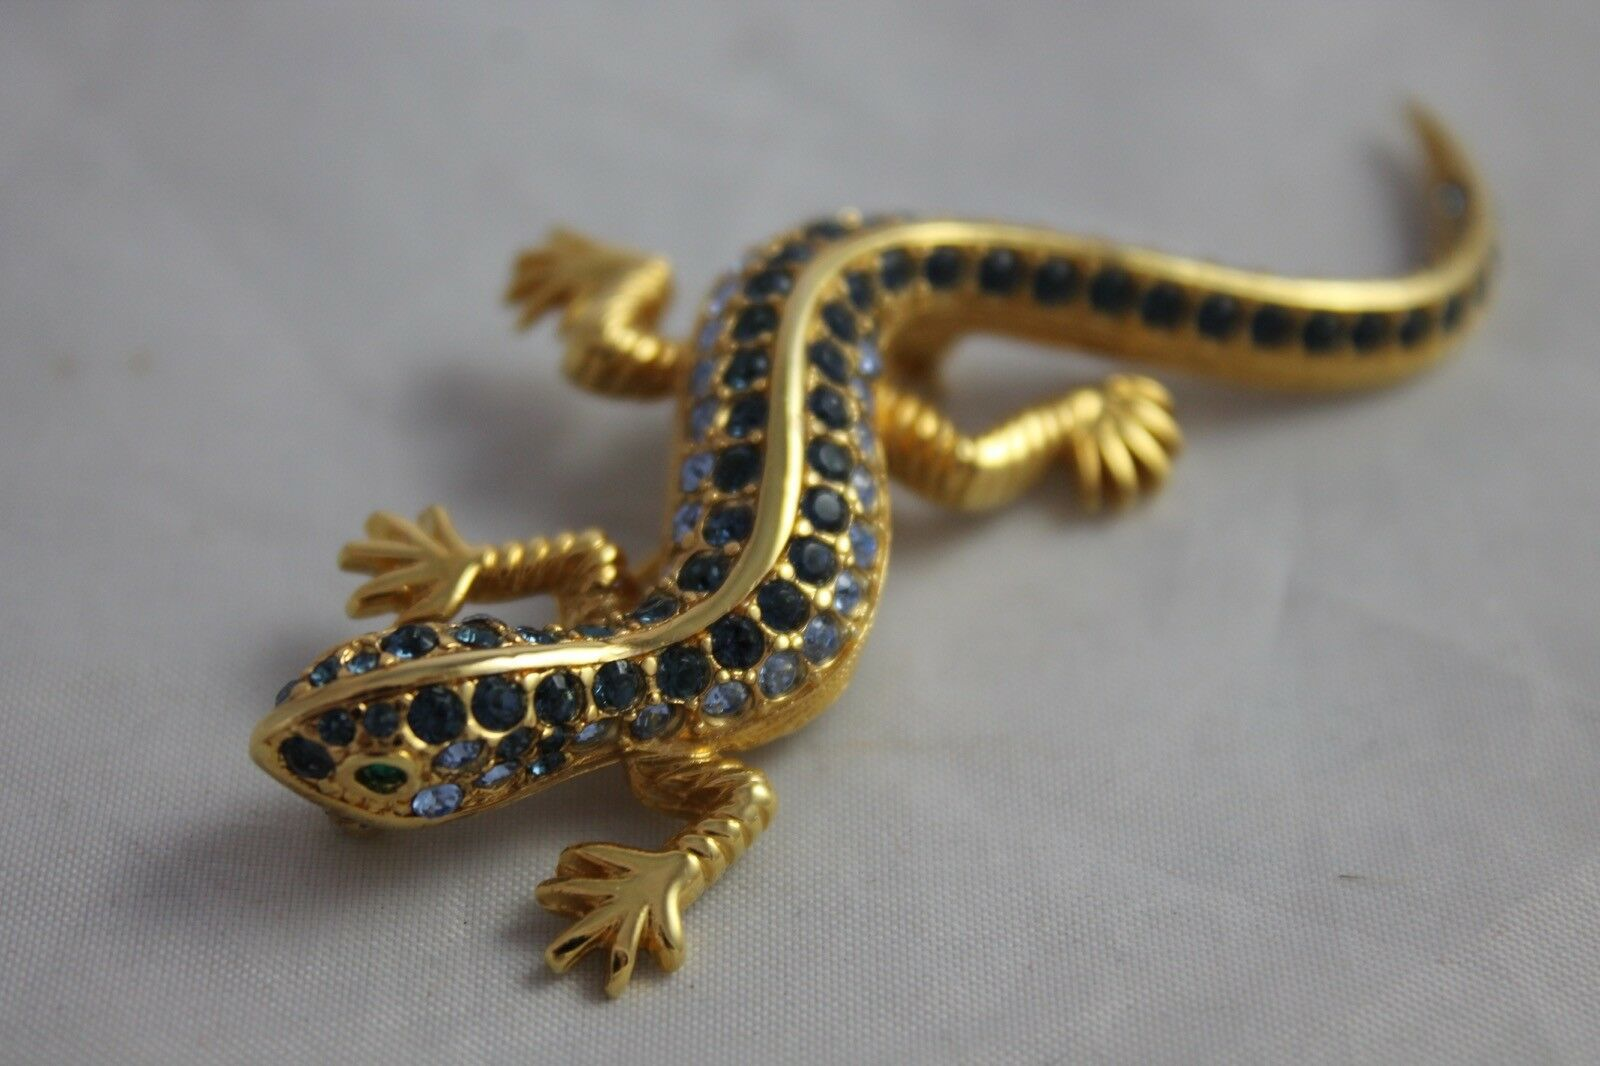 Primary image for Vintage Jewelry Brooch Figural Lizard Rhinestone Pin Blue Green Crystal